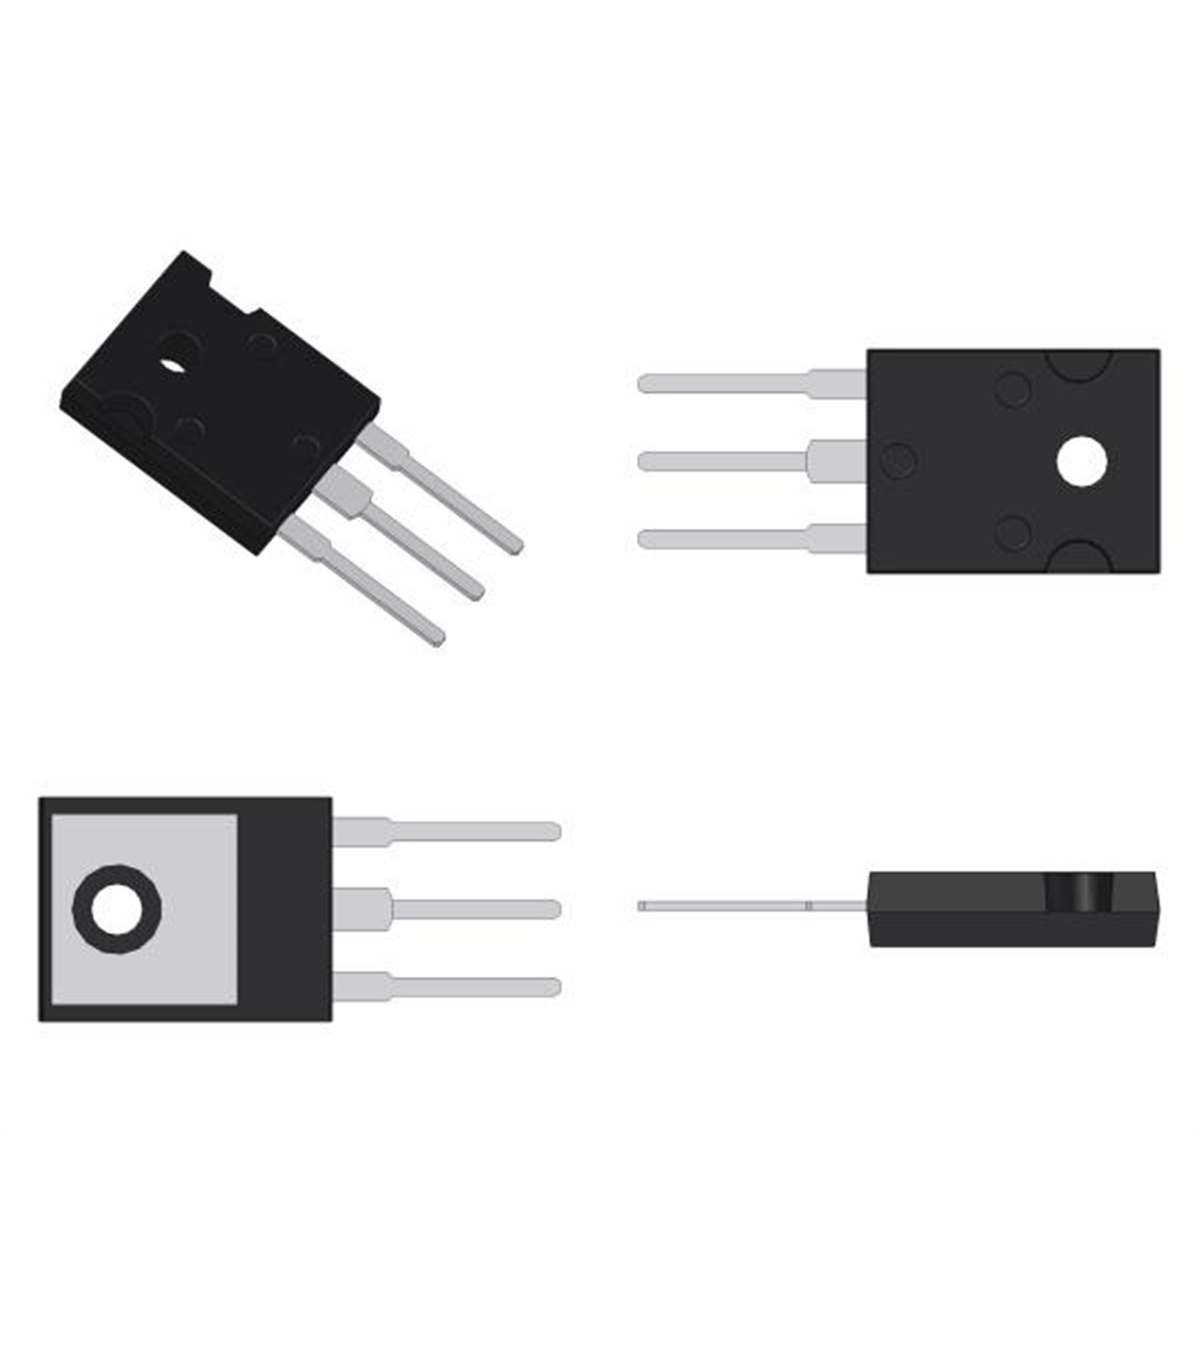 PHW20N50E Transisotor TO-247